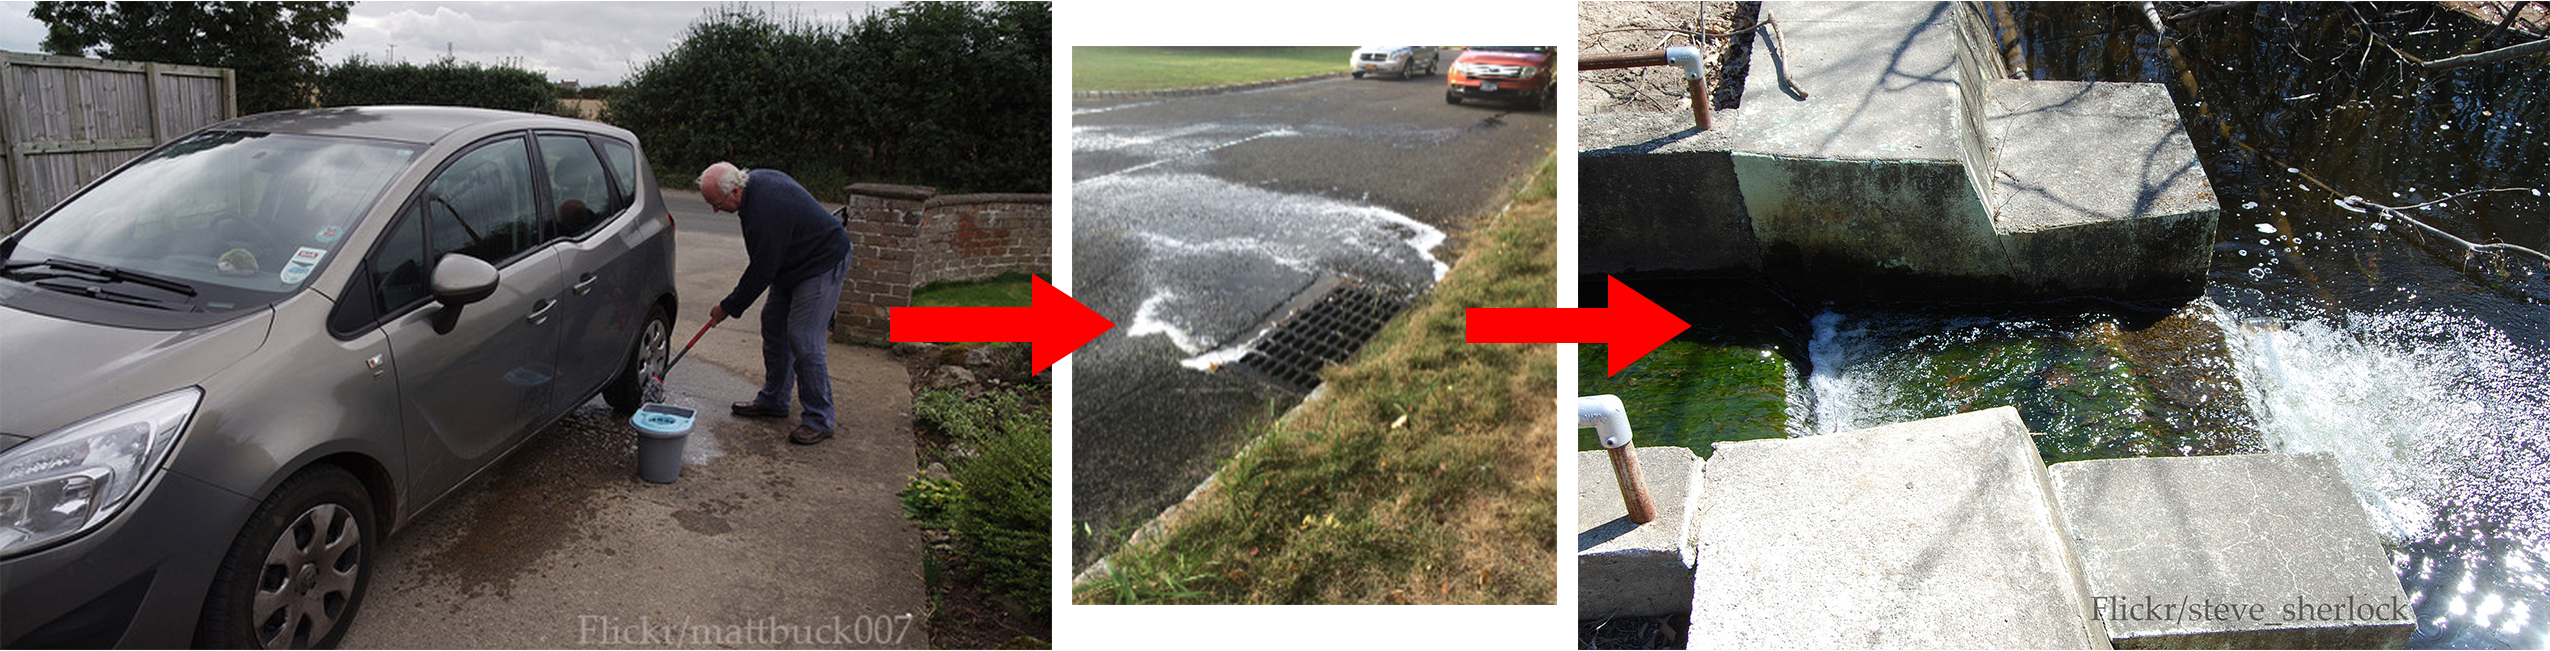 storm water basin cleaning